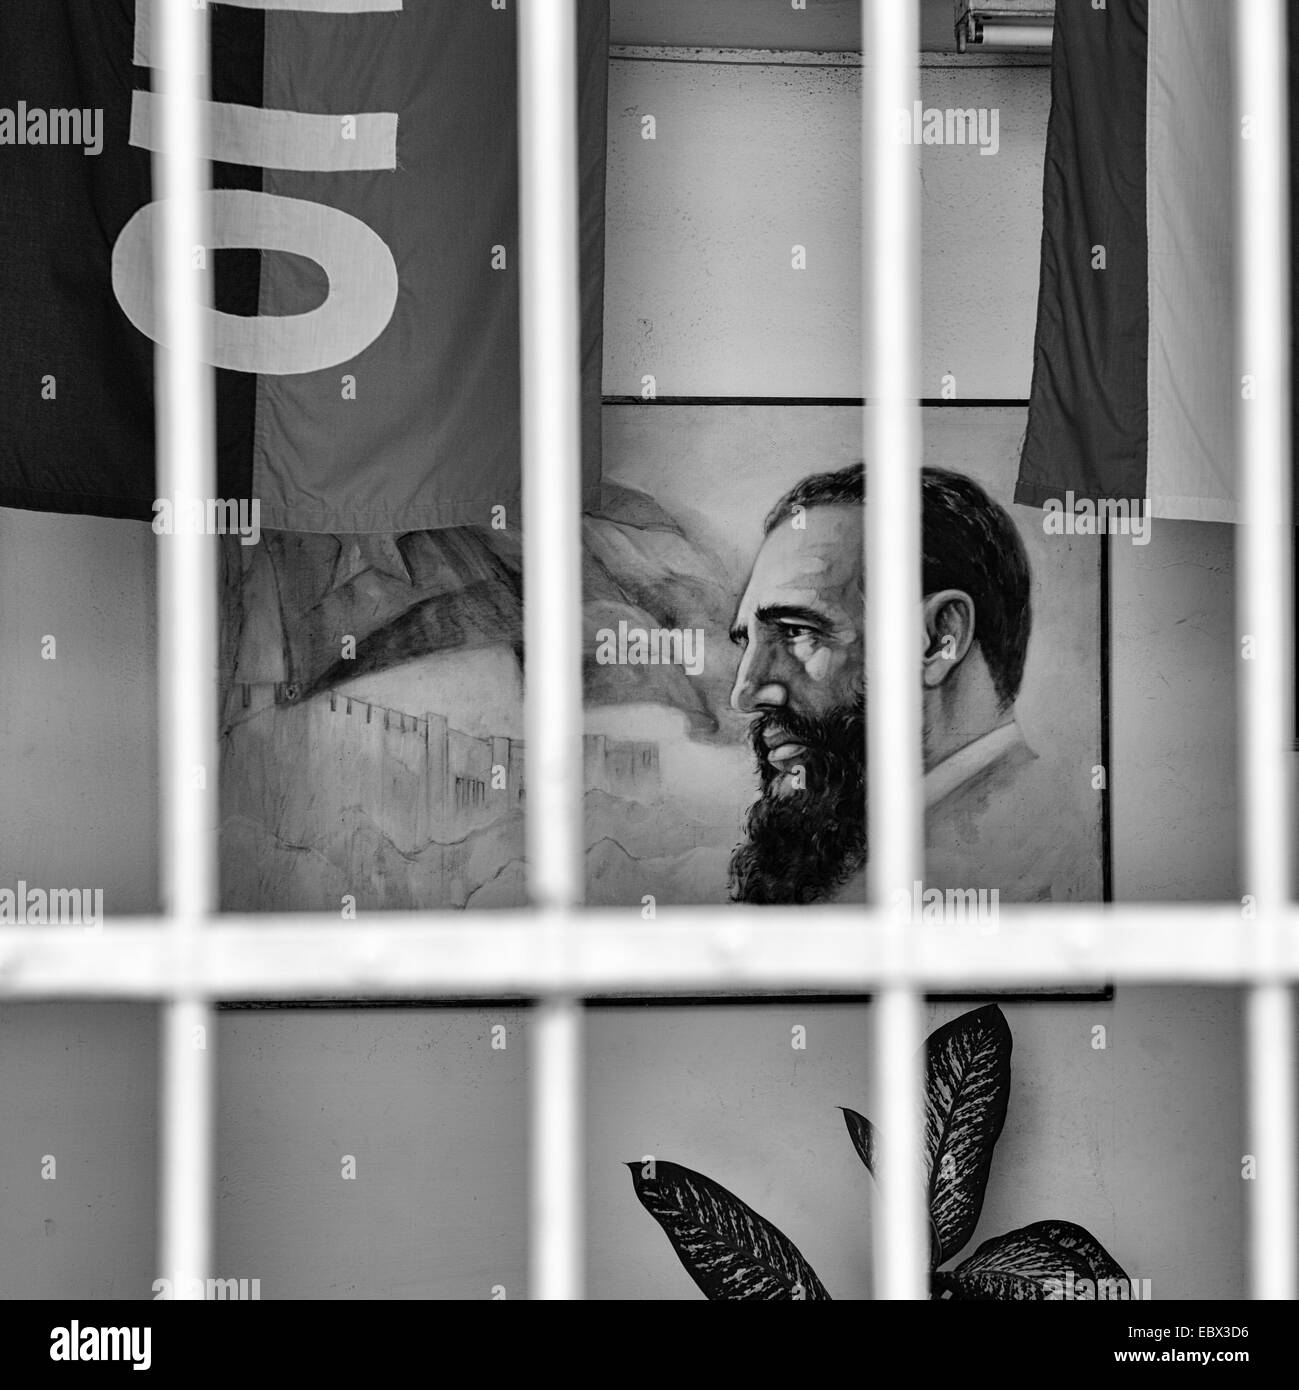 A portrait of Fidel Castro inside a government building in Cienfuegos, Cuba. - Stock Image